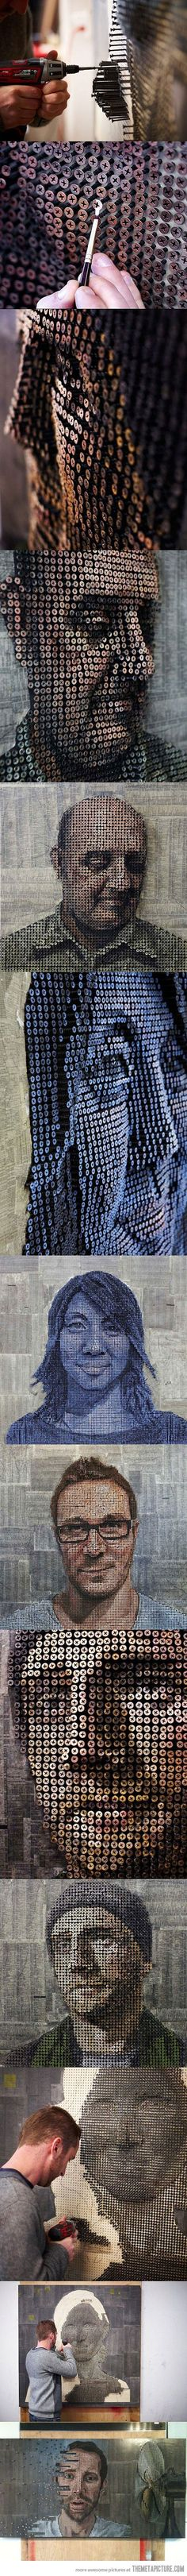 cool...3D portraits made out of screws! ビスで3D少女絵を作った、凄い!